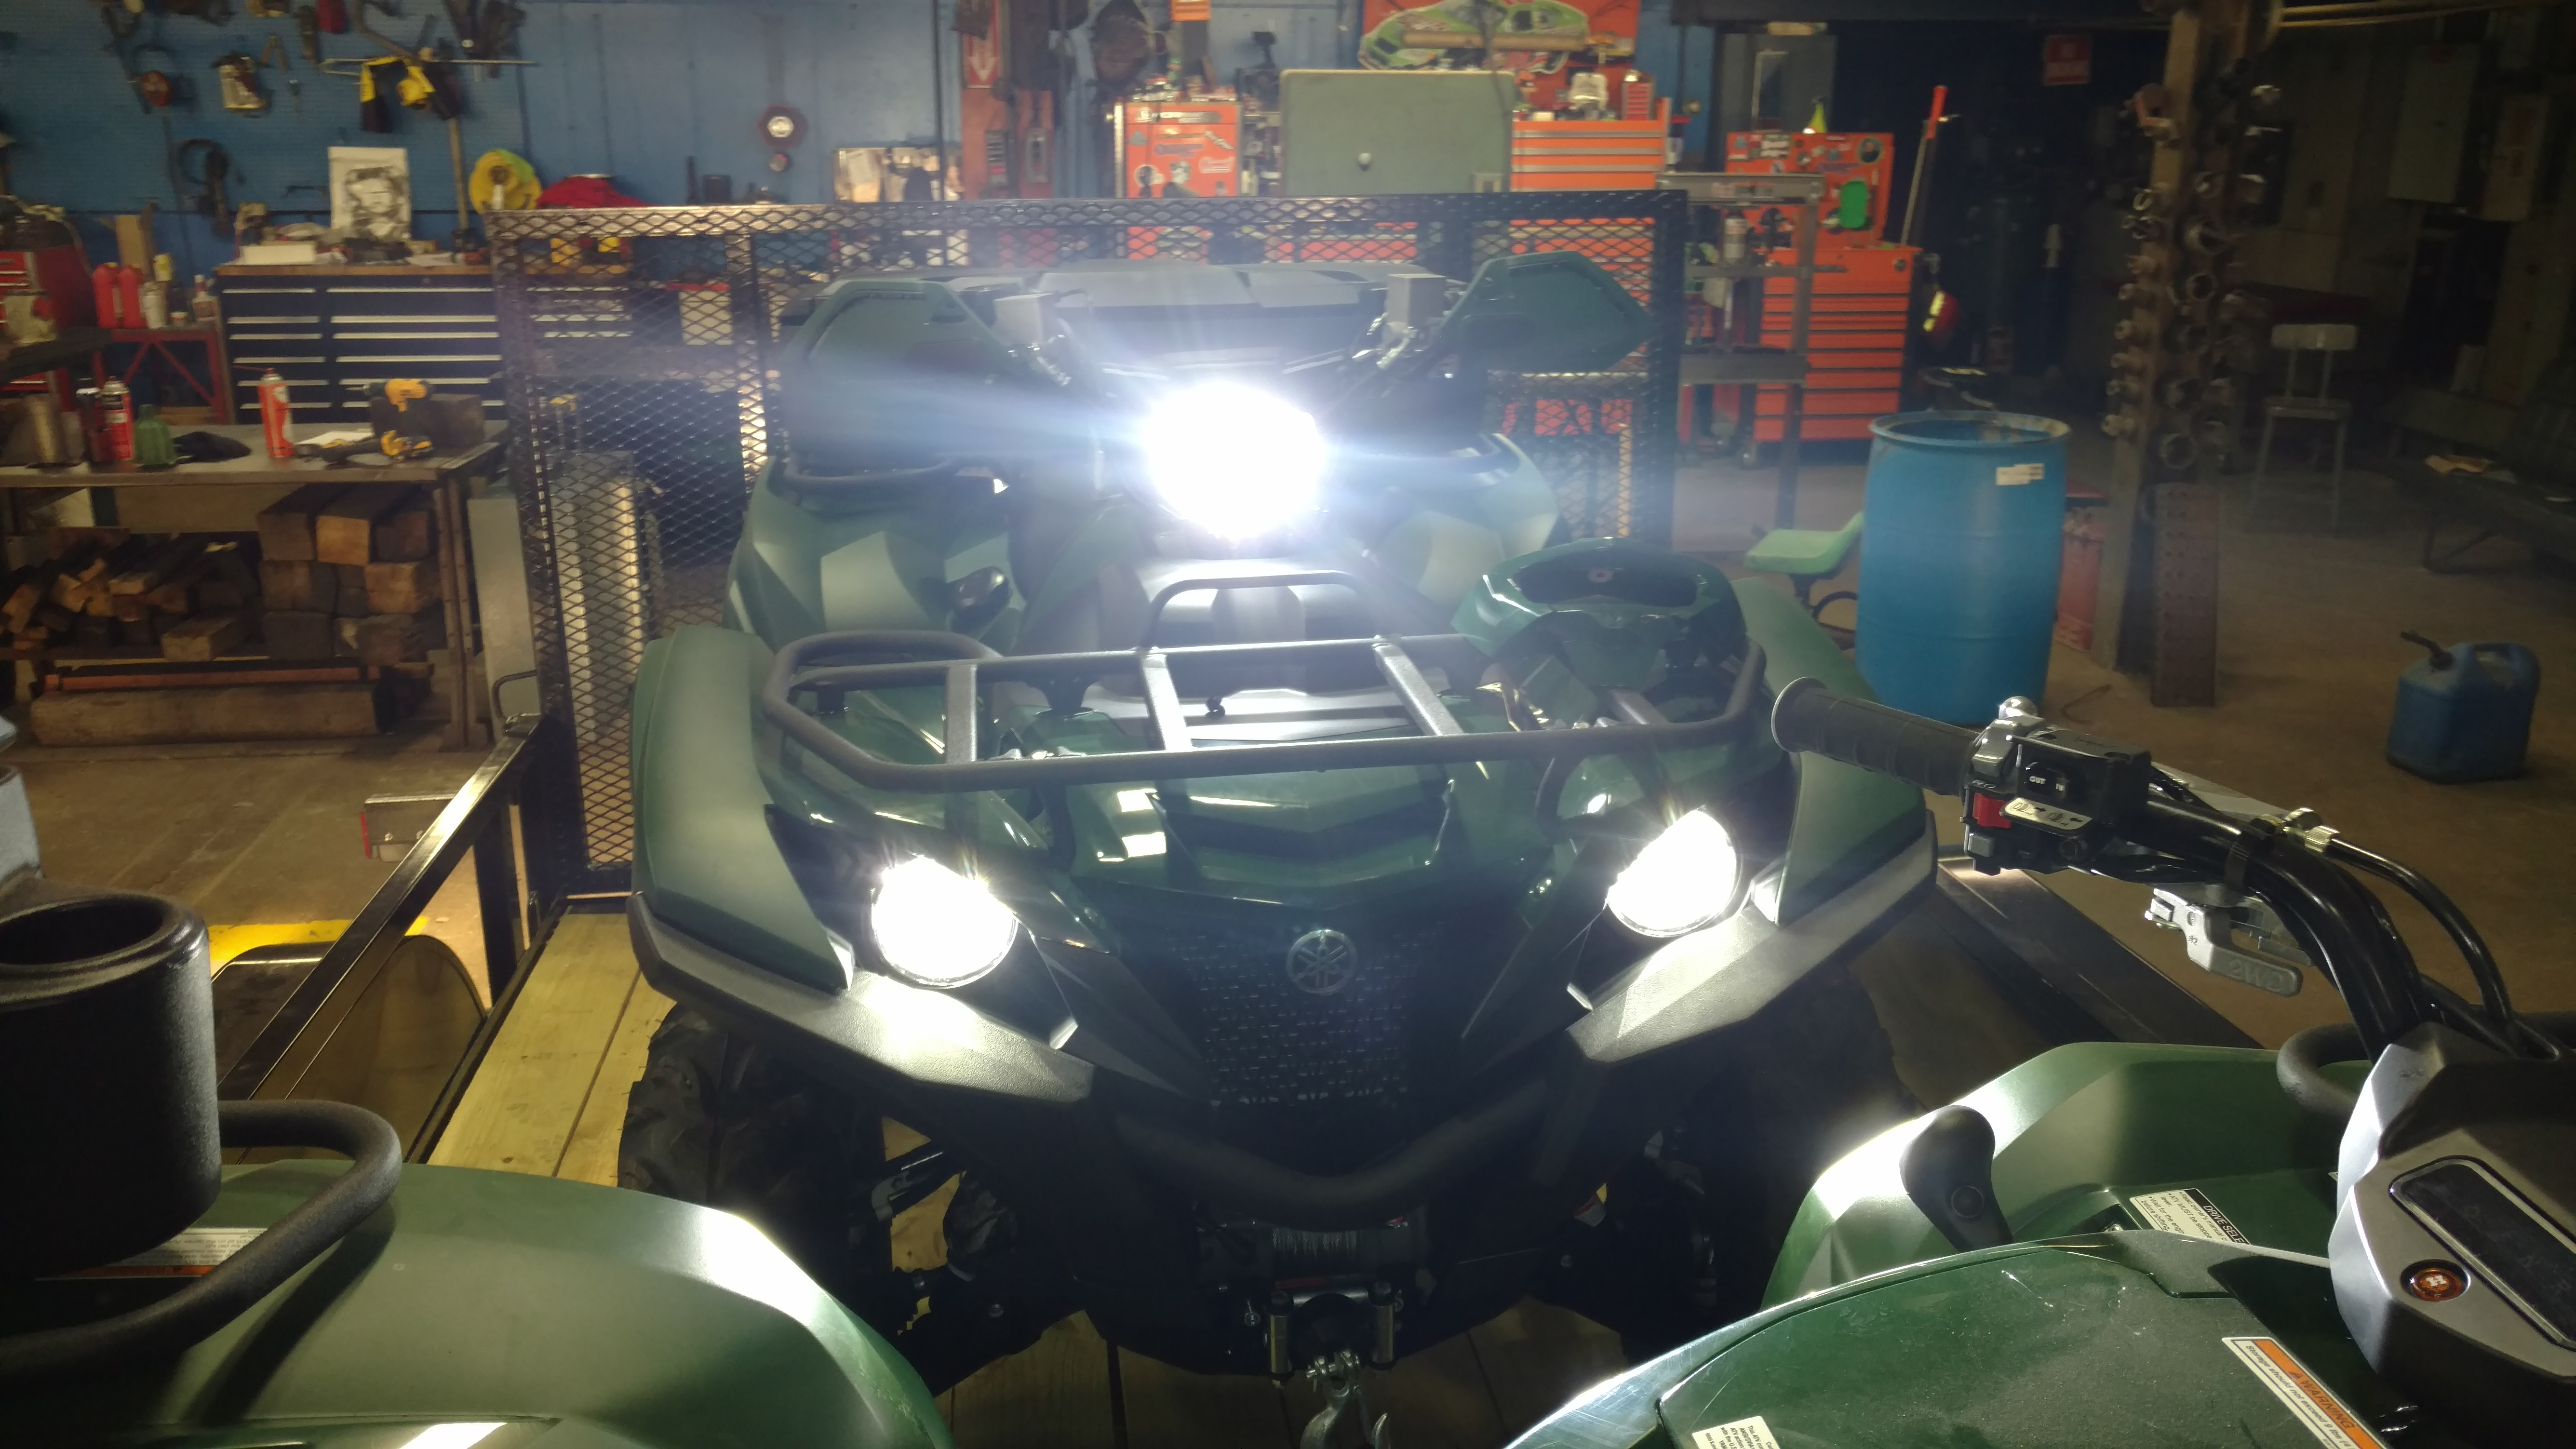 Can The Handlebar Headlight Bulb Be Changed To An Led On A